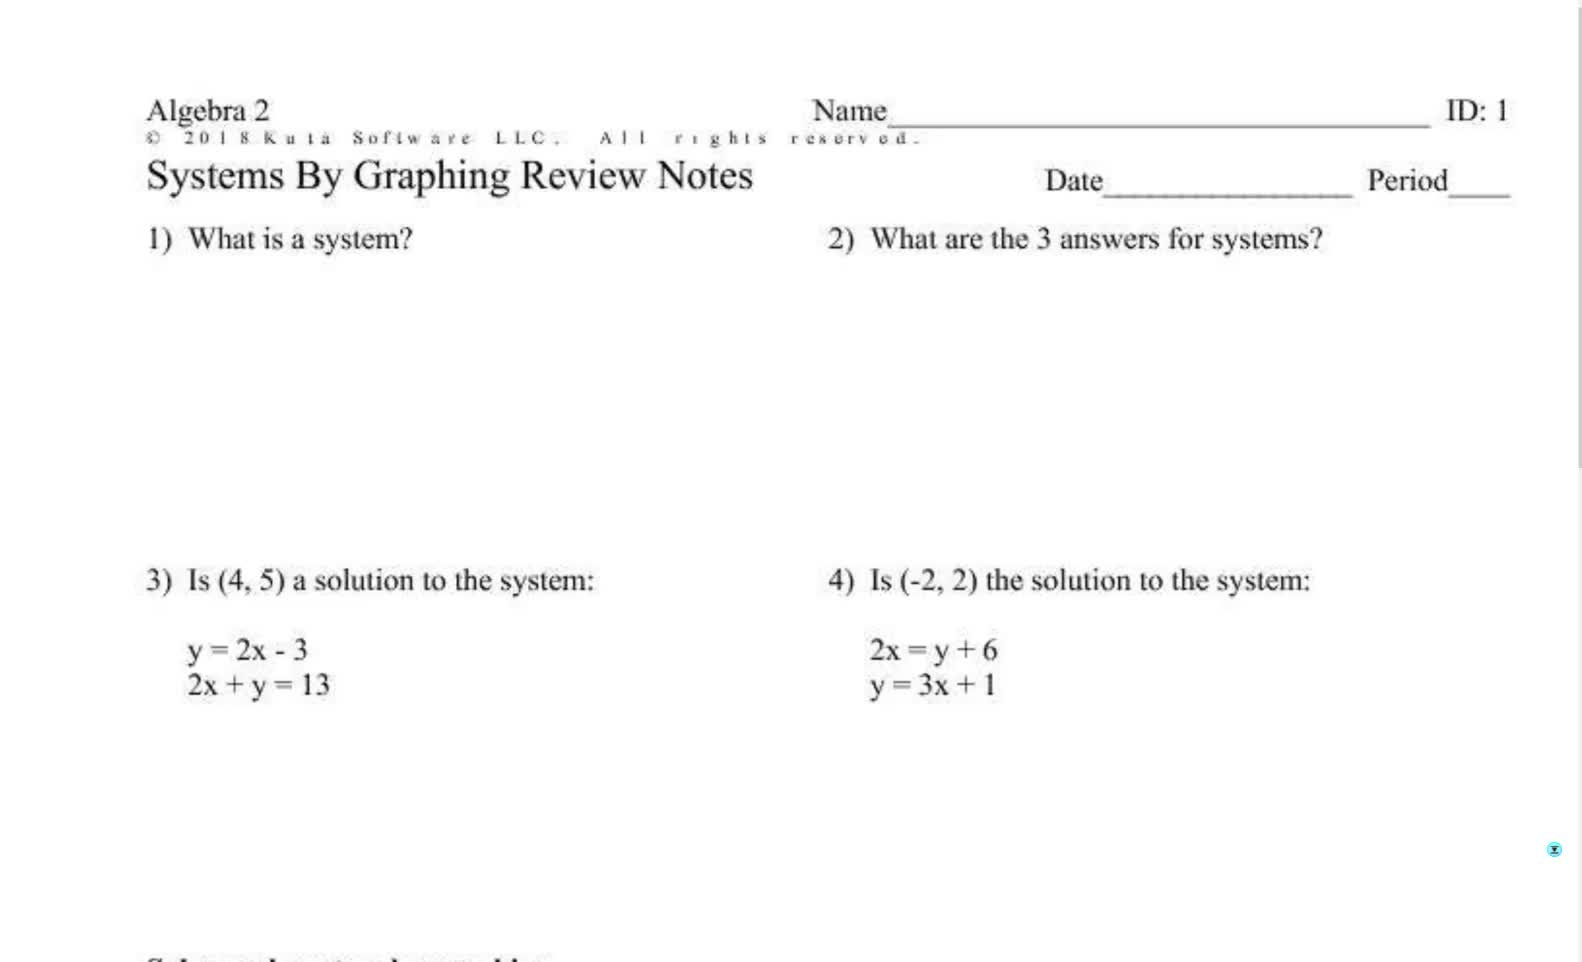 Algebra 1 Review of Systems by Graphing